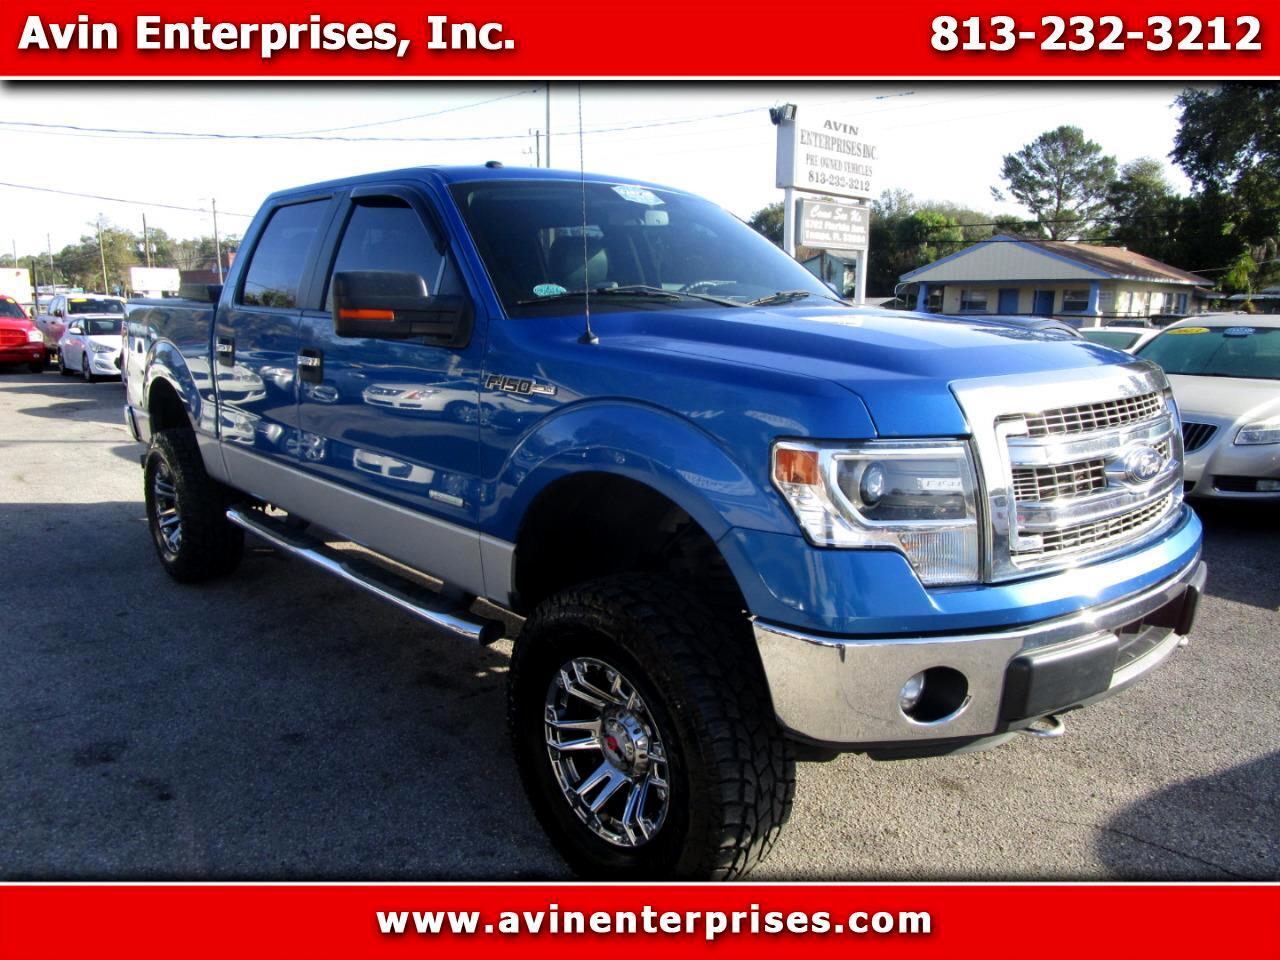 Ford F-150 XLT 4x4 SuperCrew 2014